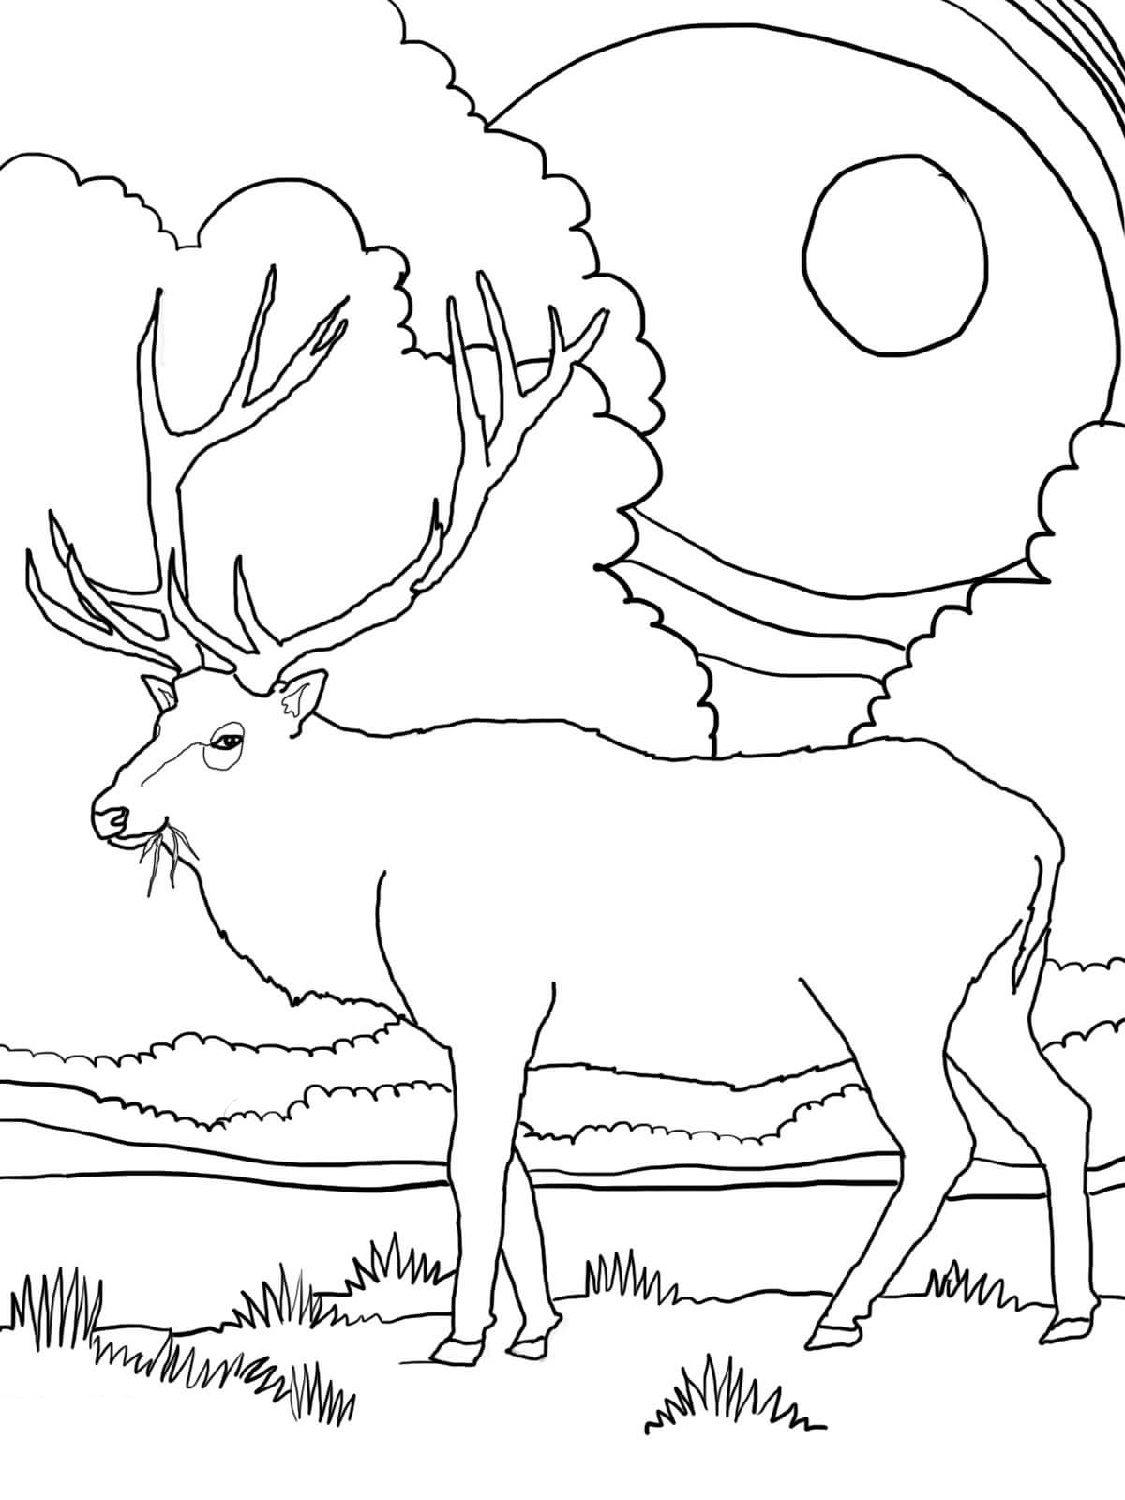 elk pictures to color bull elk coloring pages download and print for free pictures color to elk